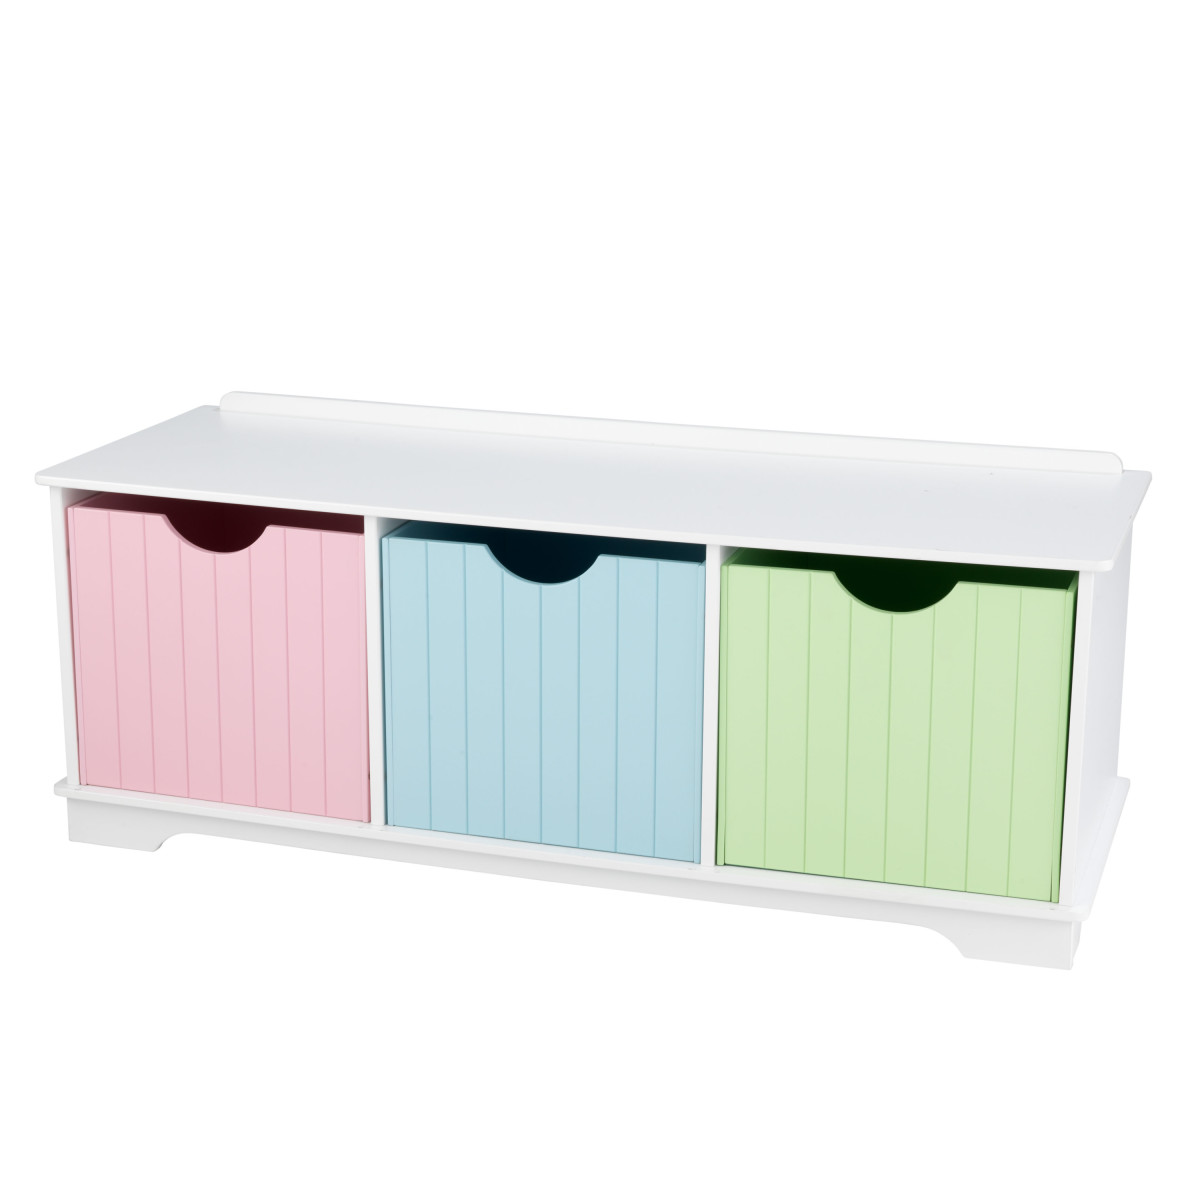 Fine Kidkraft Nantucket Storage Bench Pastel 14565 Ncnpc Chair Design For Home Ncnpcorg